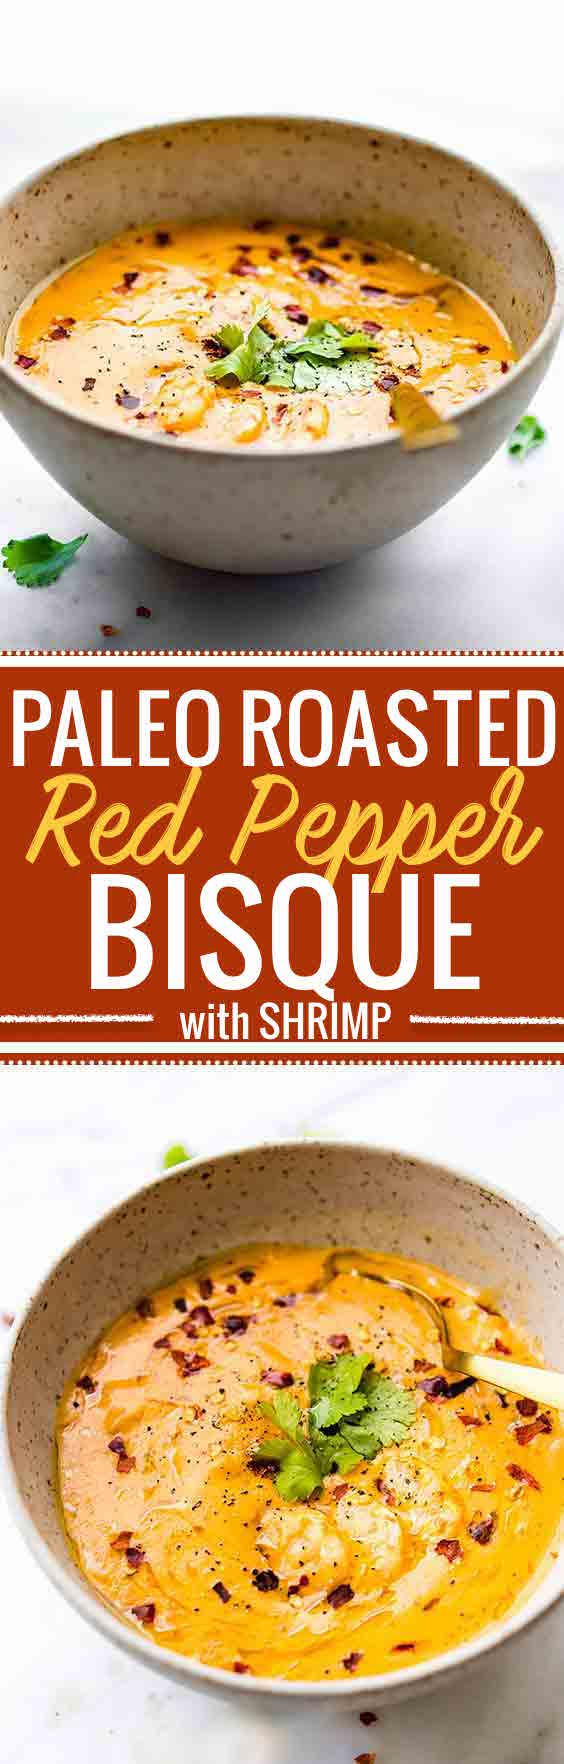 PALEO ROASTED RED PEPPER BISQUE with Shrimp. So creamy and packed with healing immunity boosting nutrients. Also a great way to get veggies into your meal. Whole30 Compliant Get your nourishment www.cottercrunch.com